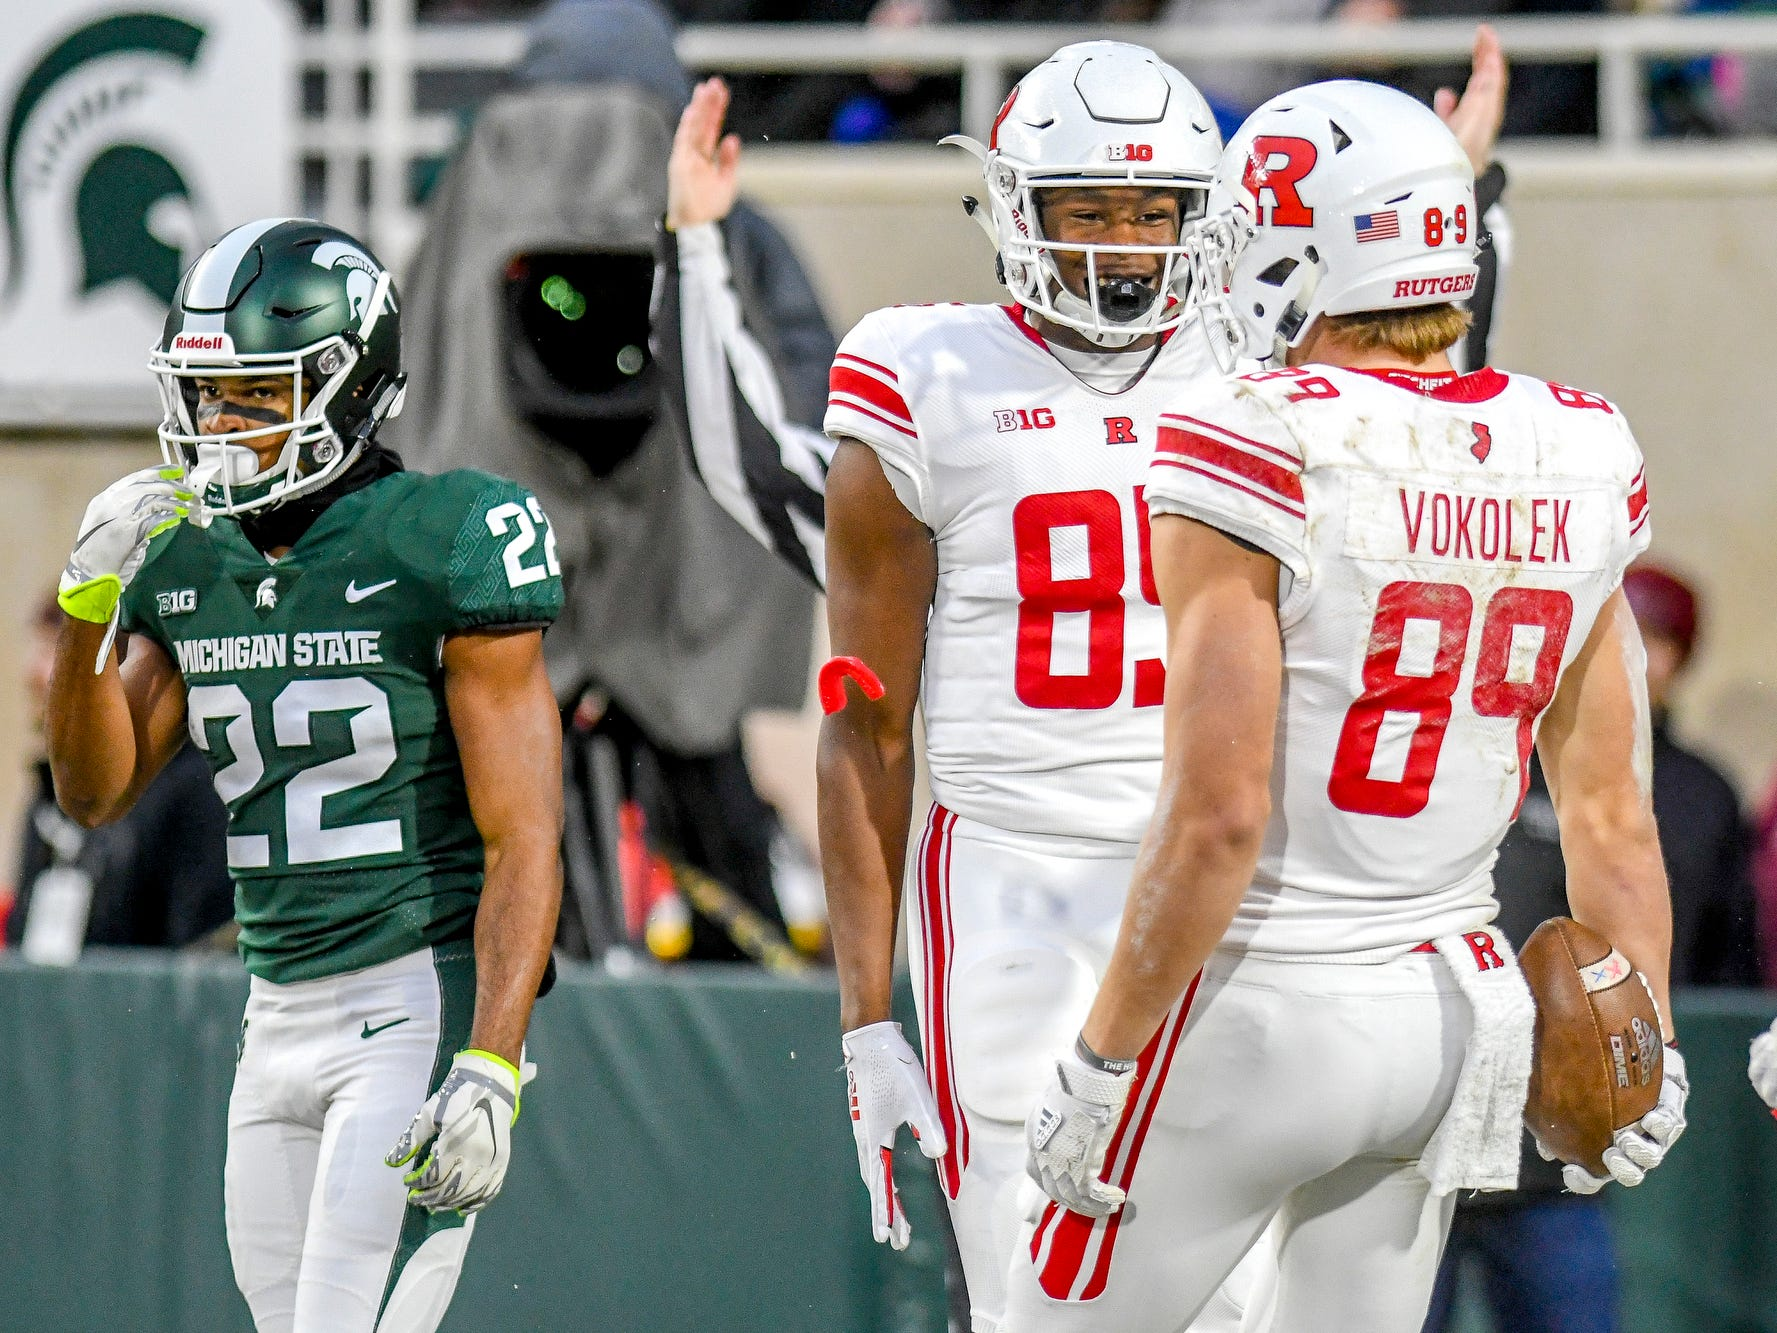 Michigan State's Josiah Scott, left, looks on as Rutgers Travis Vokolek, right, celebrates his touchdown catch with teammate Daevon Robinson during the first quarter on Saturday, Nov. 24, 2018, at Spartan Stadium in East Lansing.